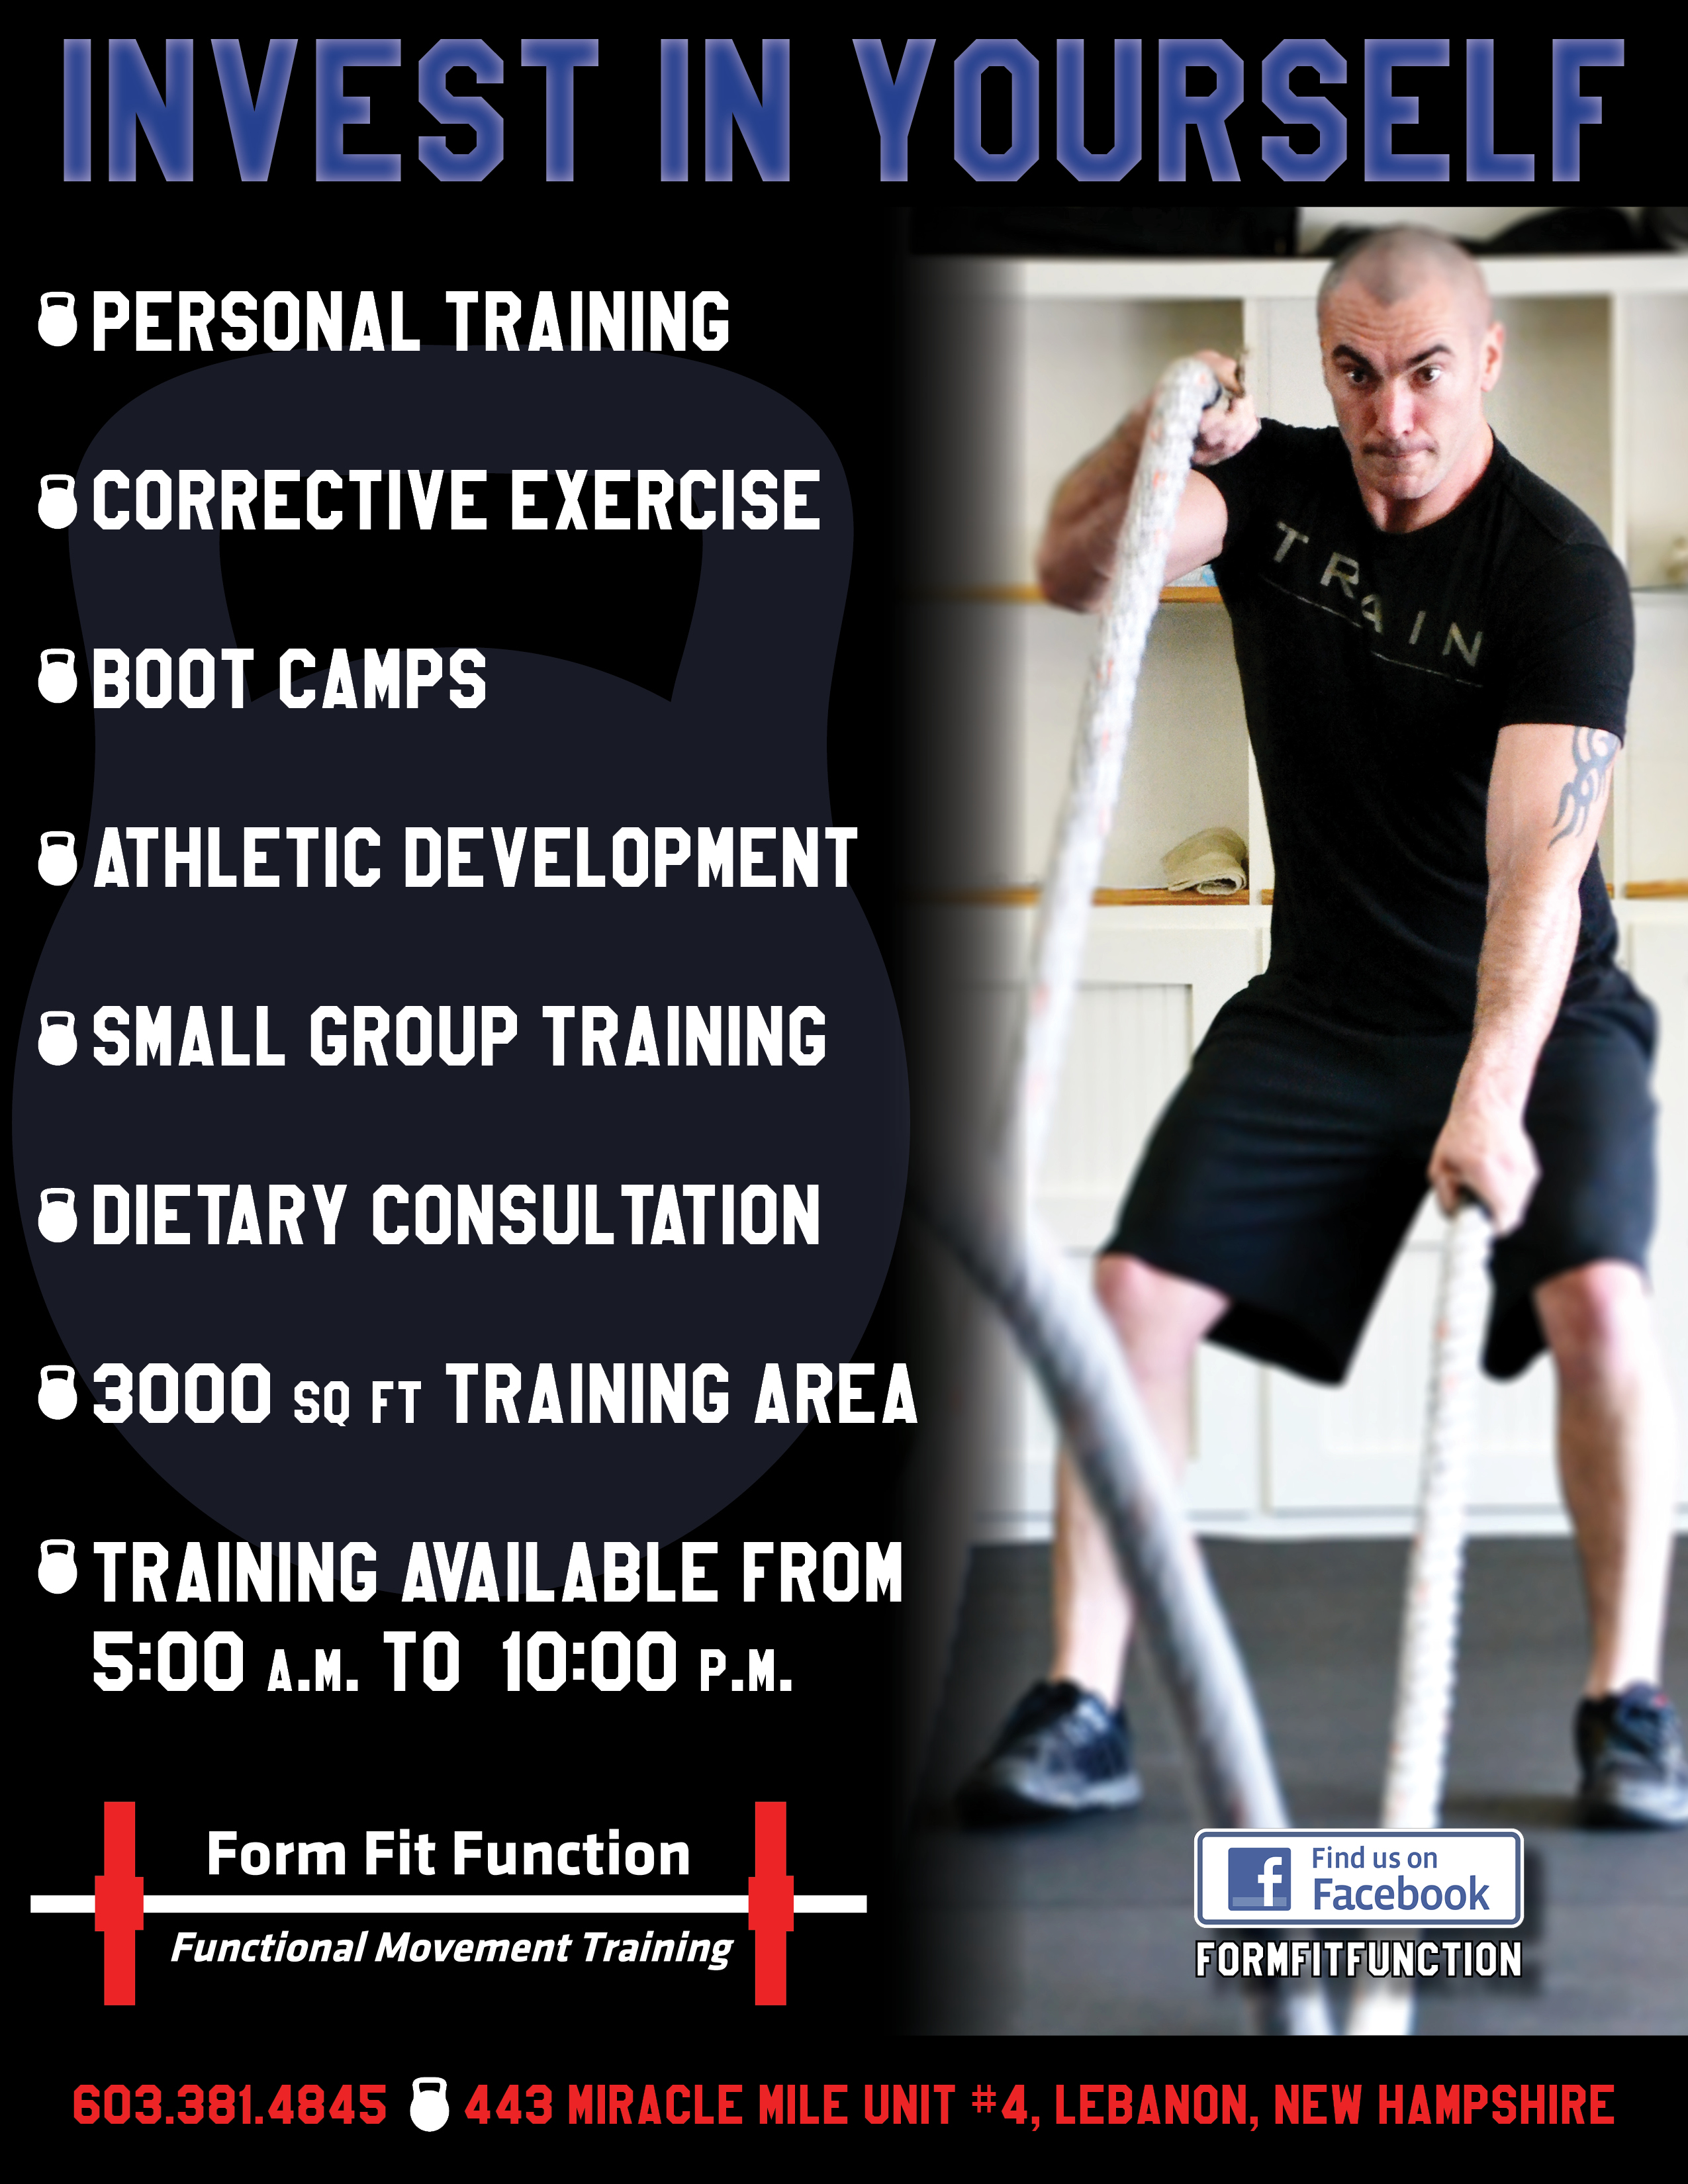 Form Fit Function Flyer